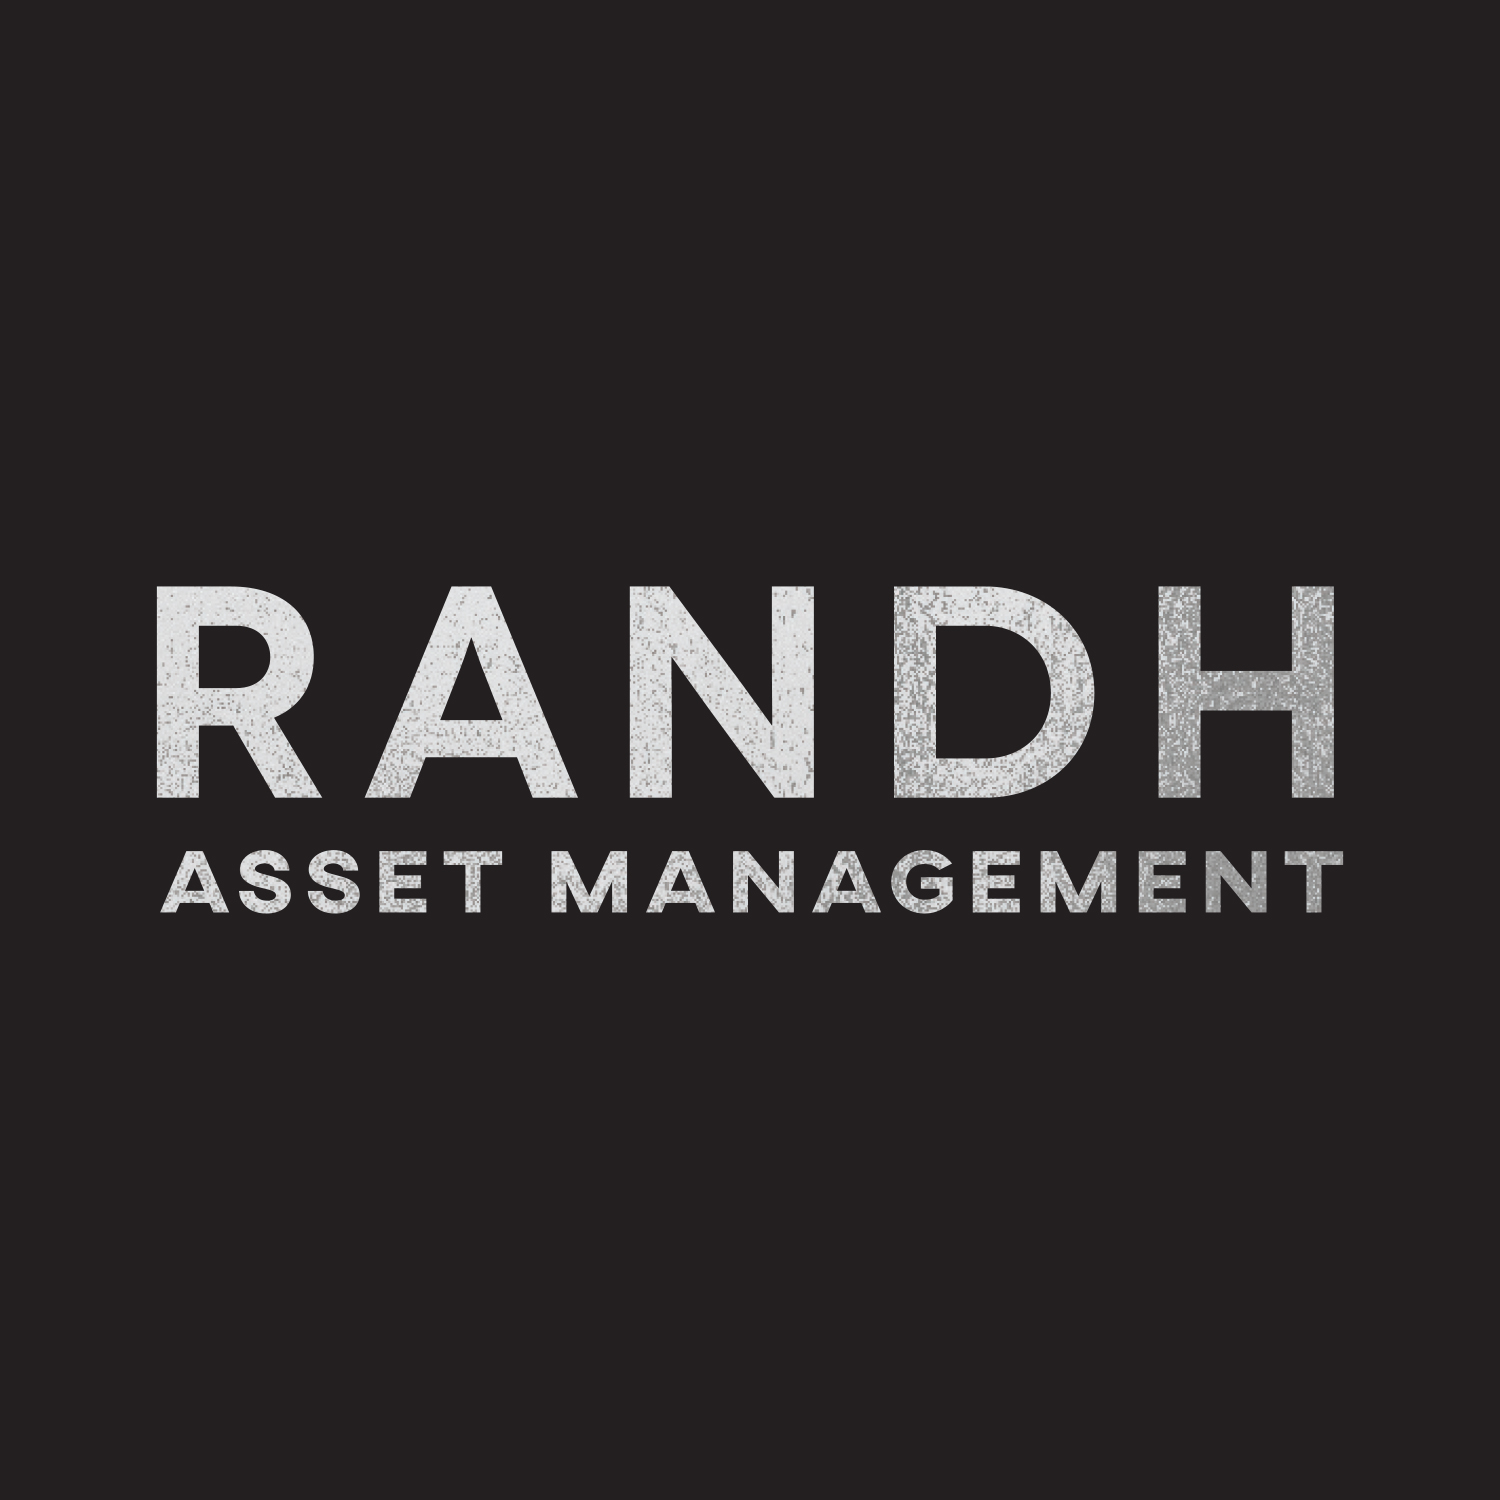 RandH Asset Management